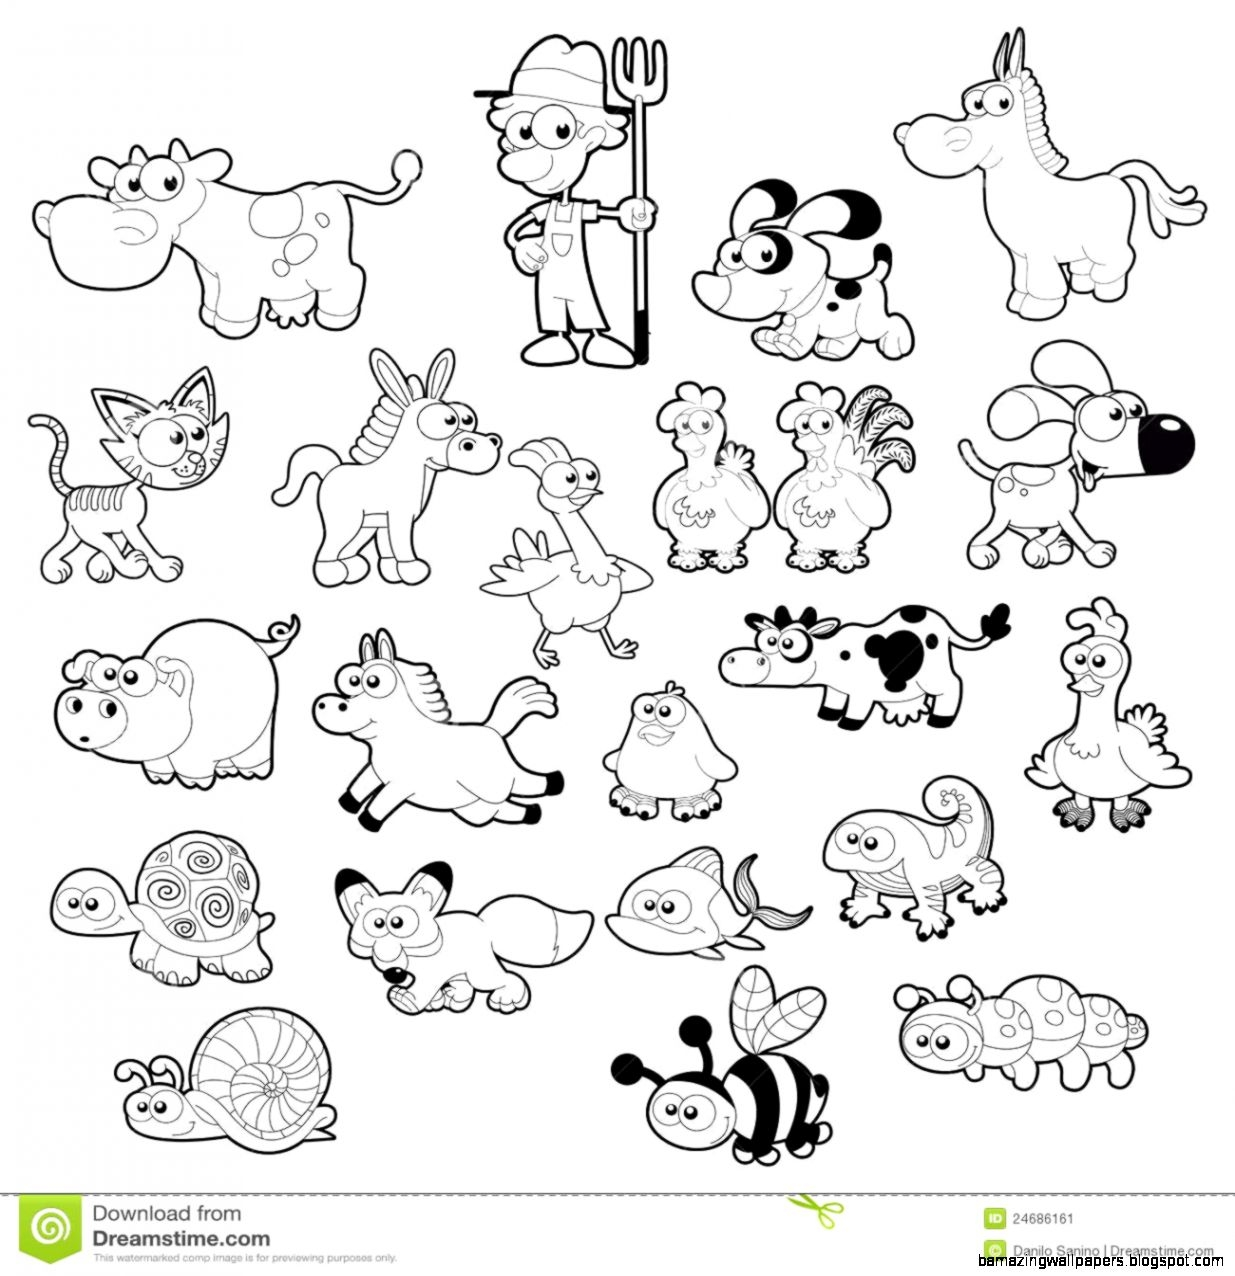 Land animals background clipart black and white.